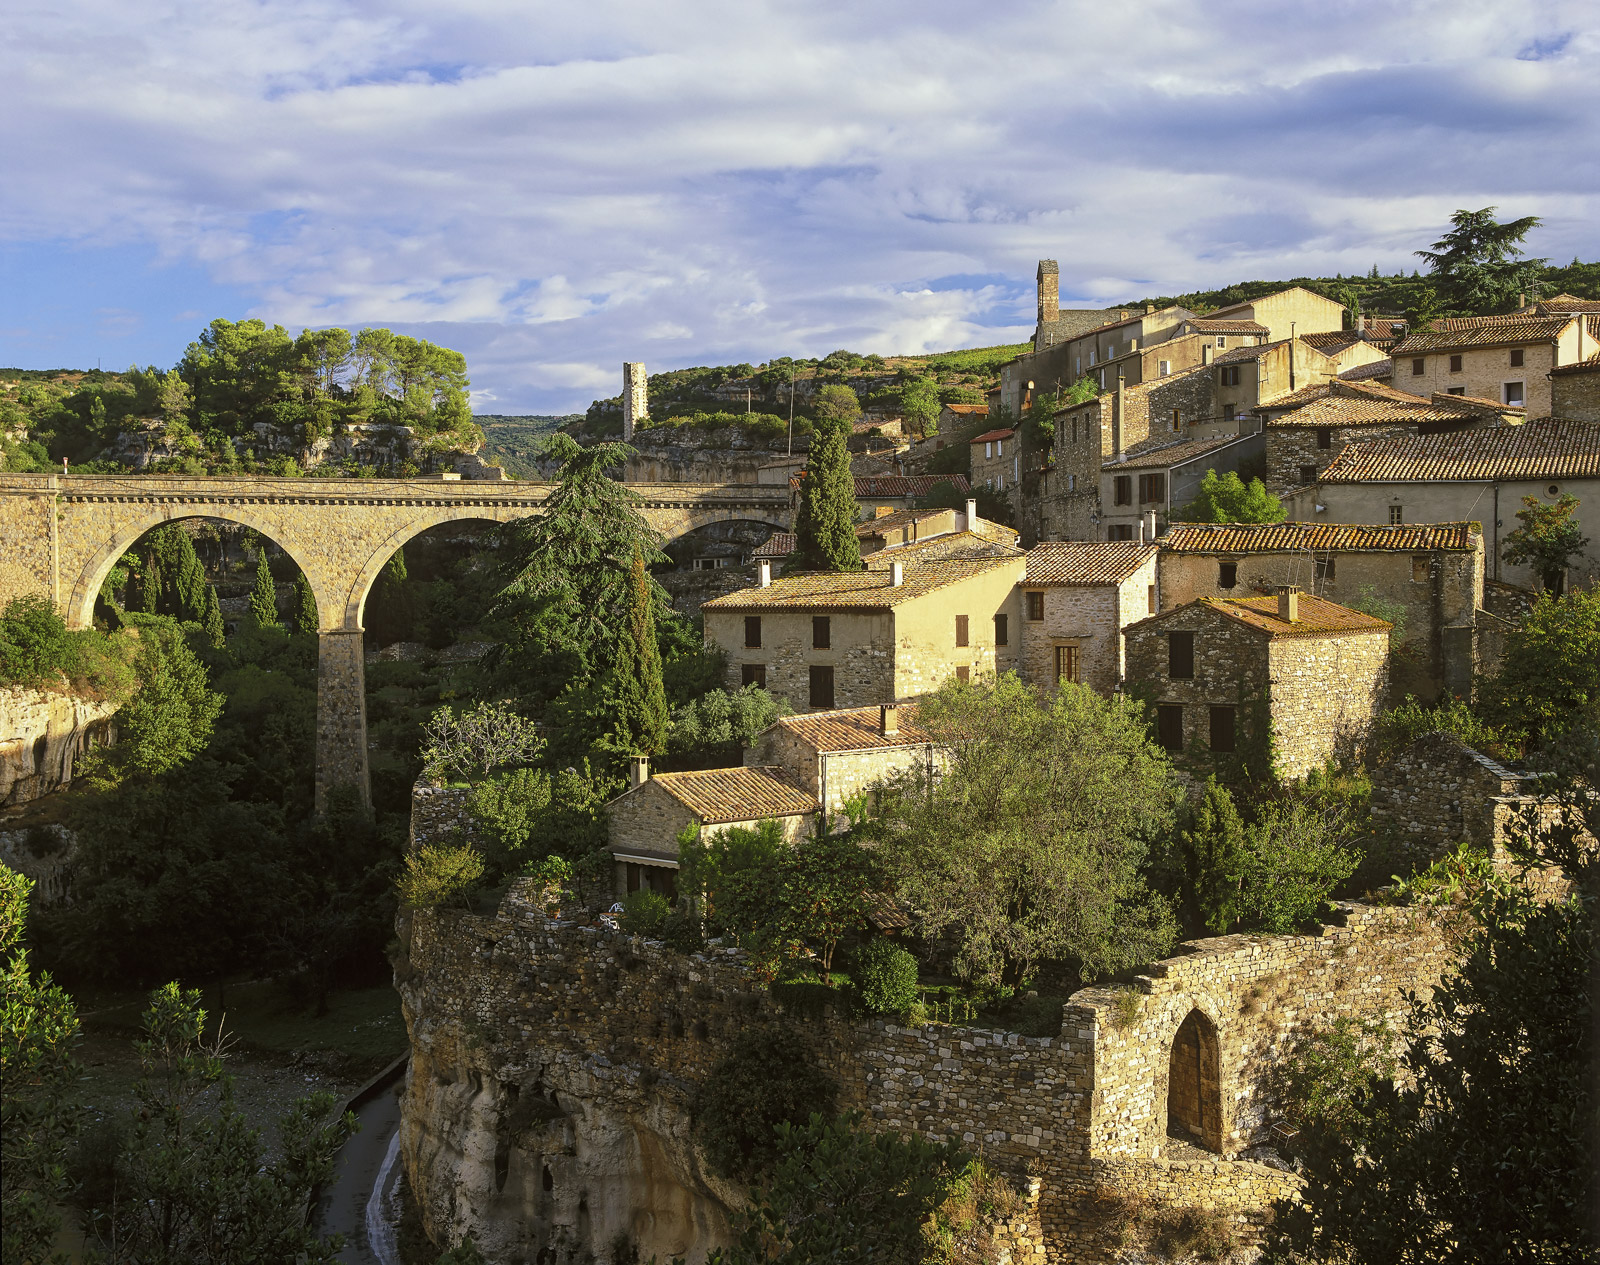 One of the most spectacular old French stone towns in Languedoc must surely be the little Cathar town of Minerve. The only...